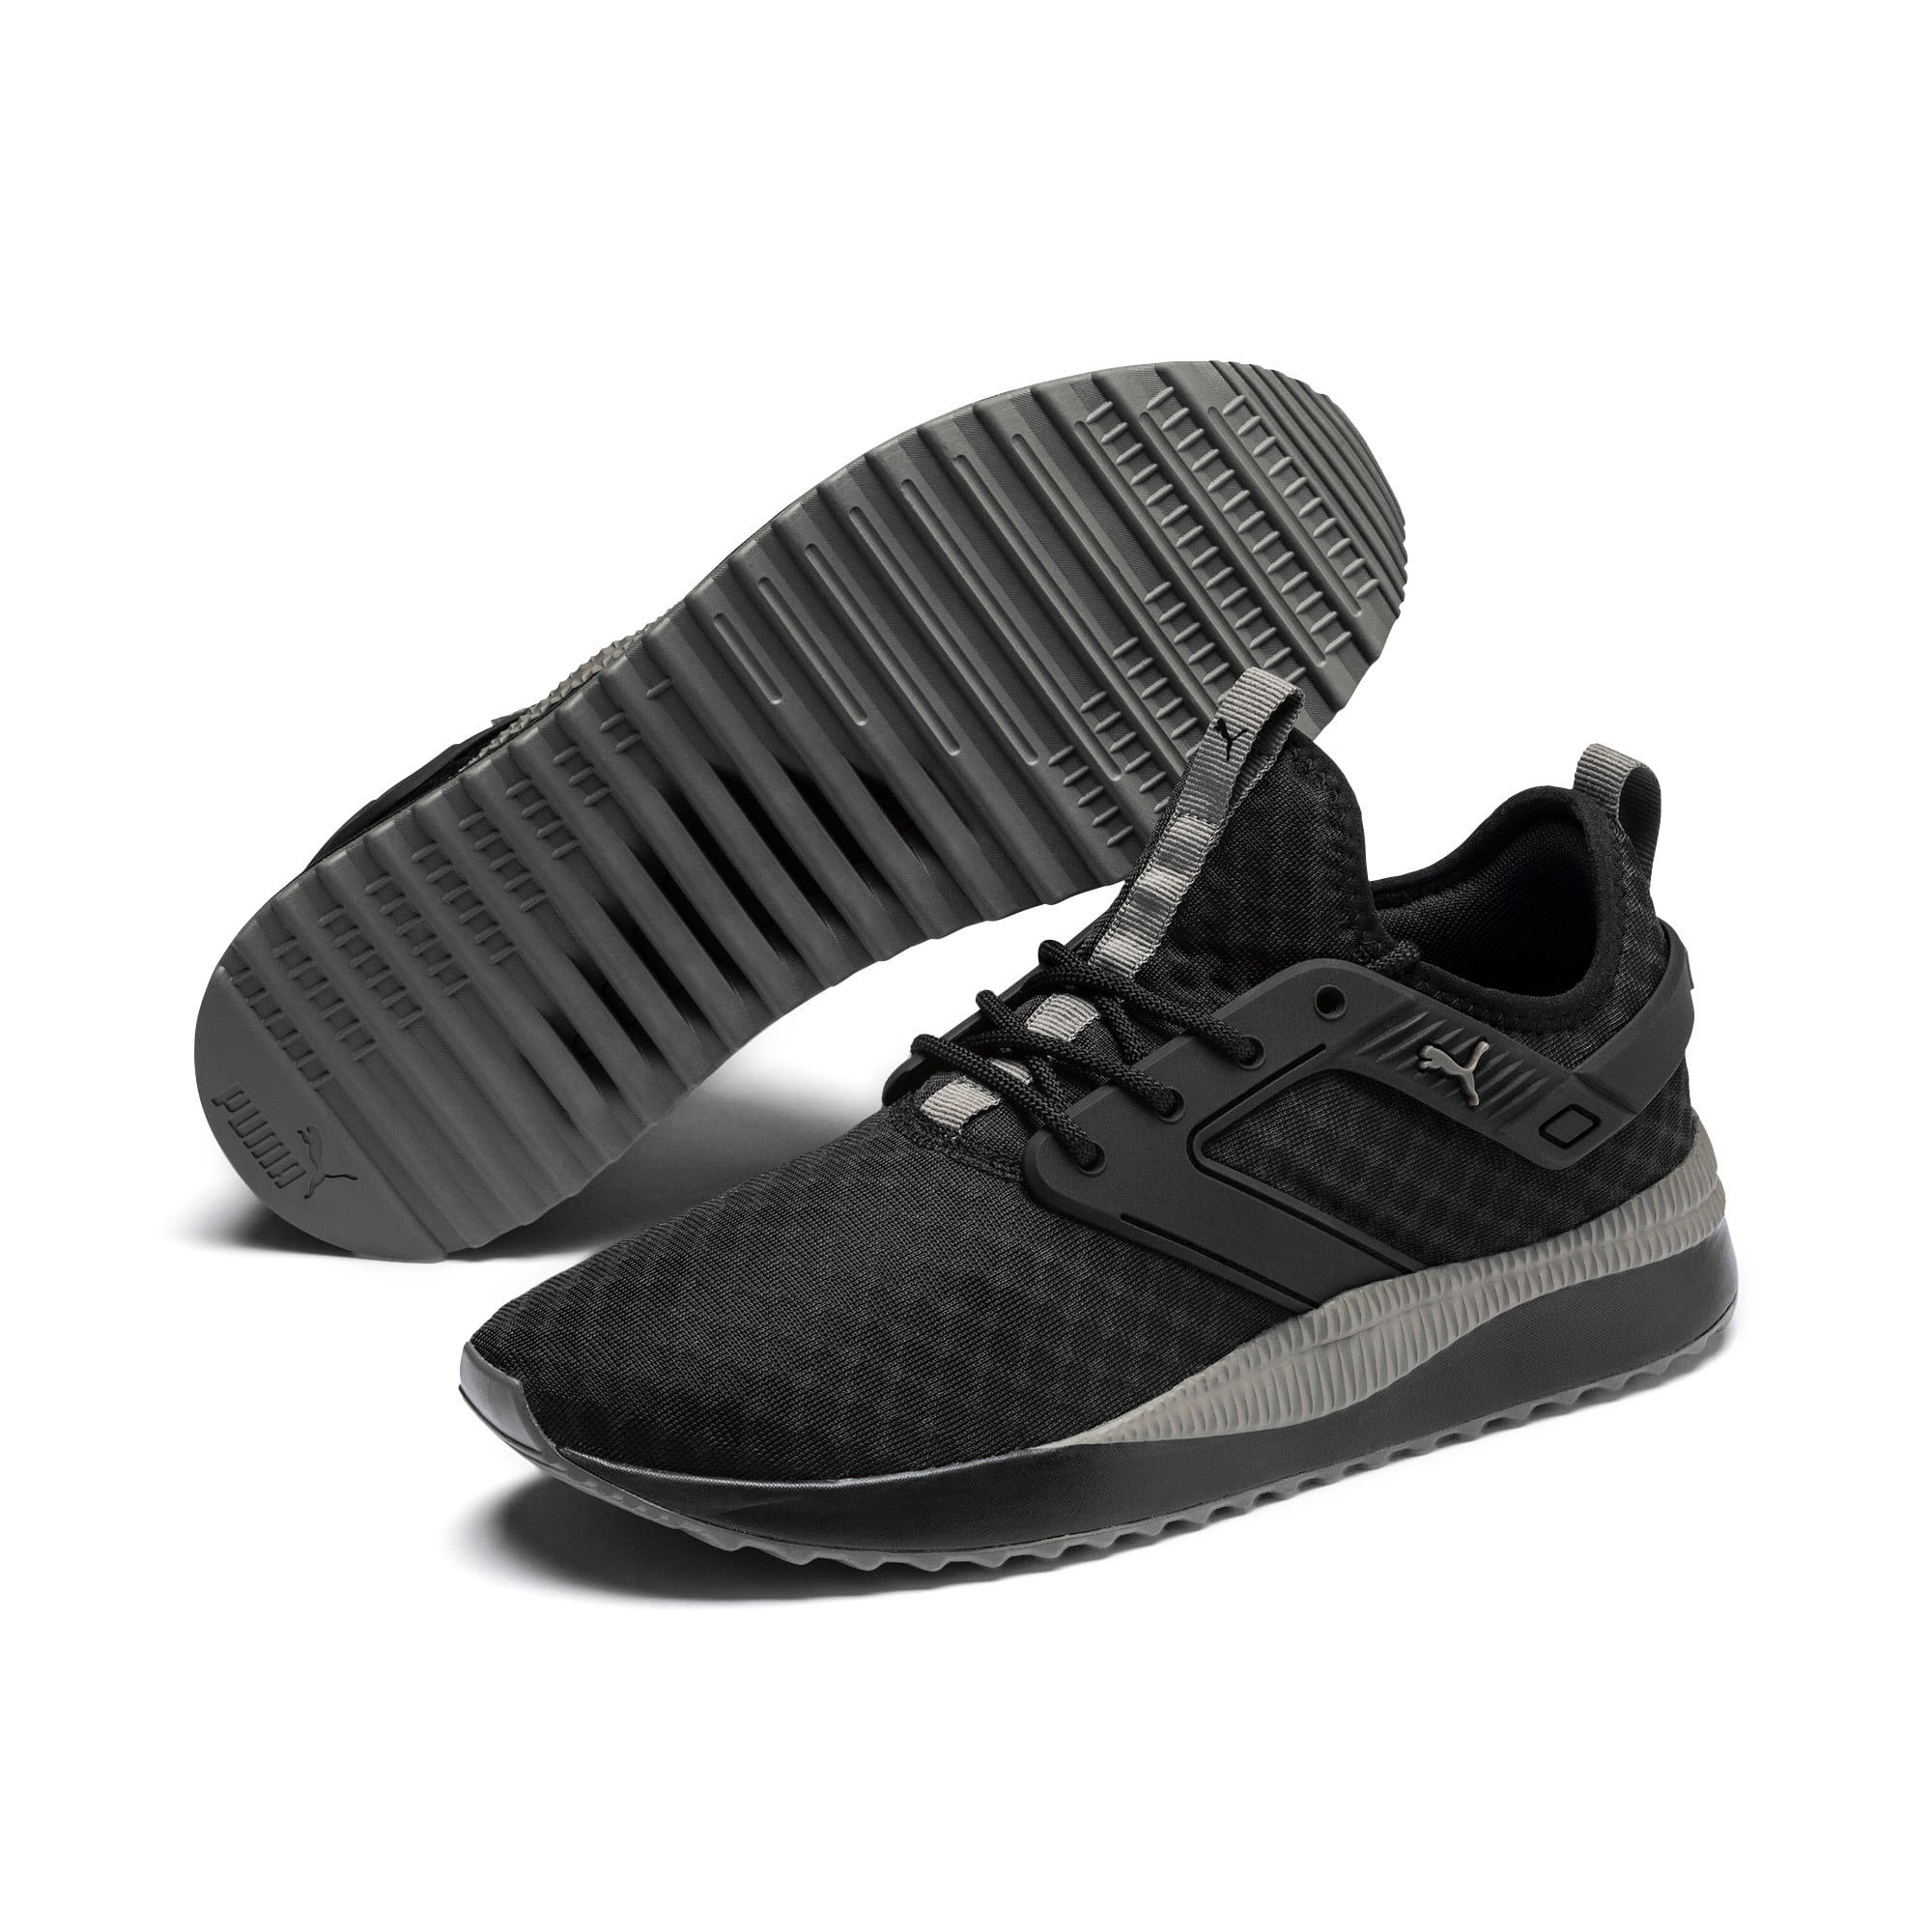 Thumbnail 3 of Pacer Next Excel Core Sneakers, Puma Black-Charcoal Gray, medium